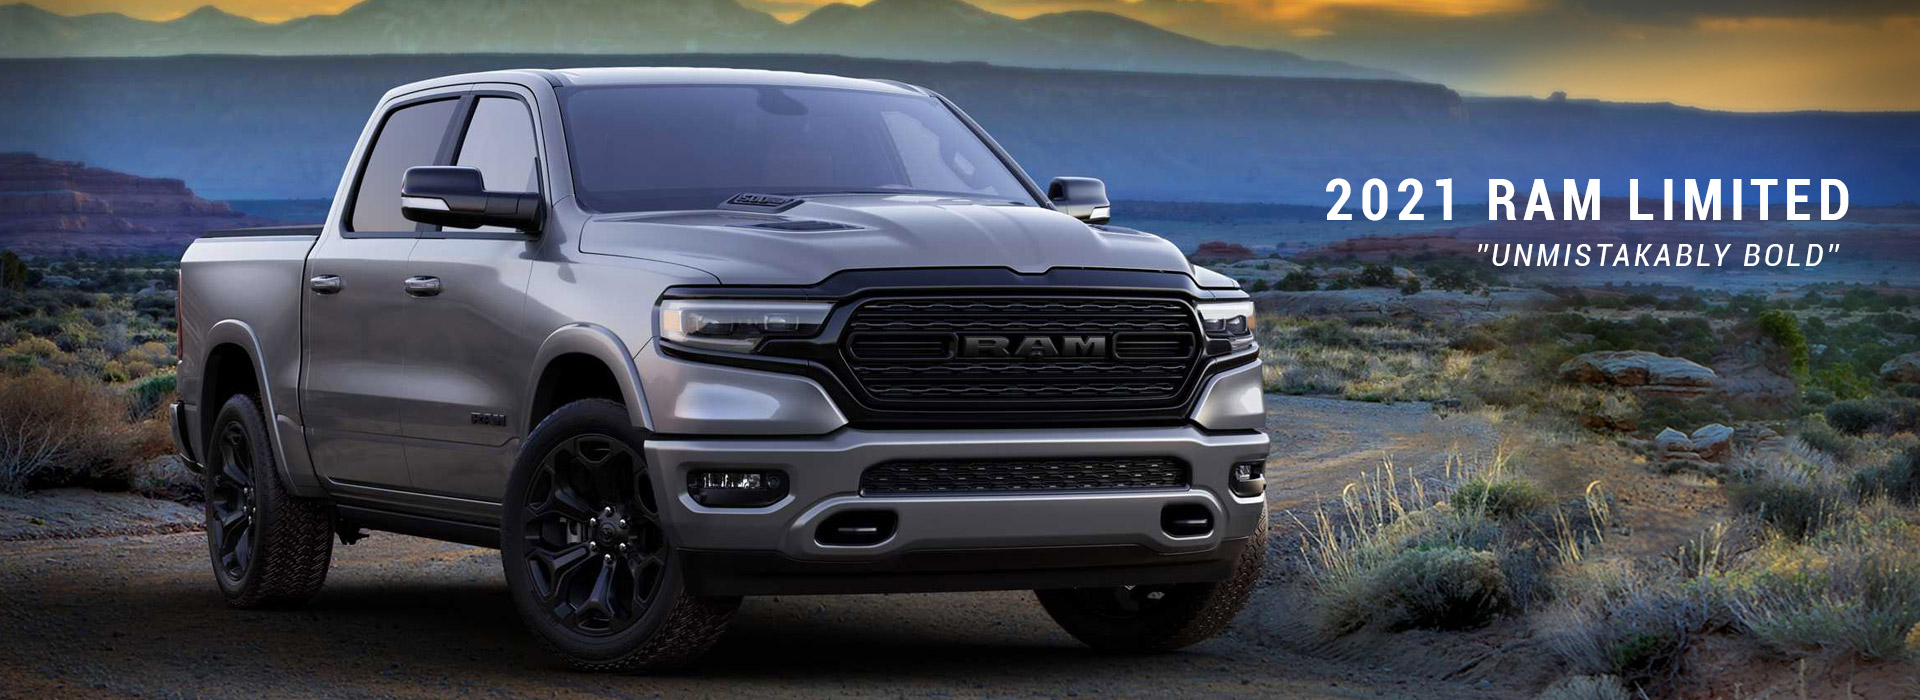 2021 Ram Trucks 1500 Limited Night Edition